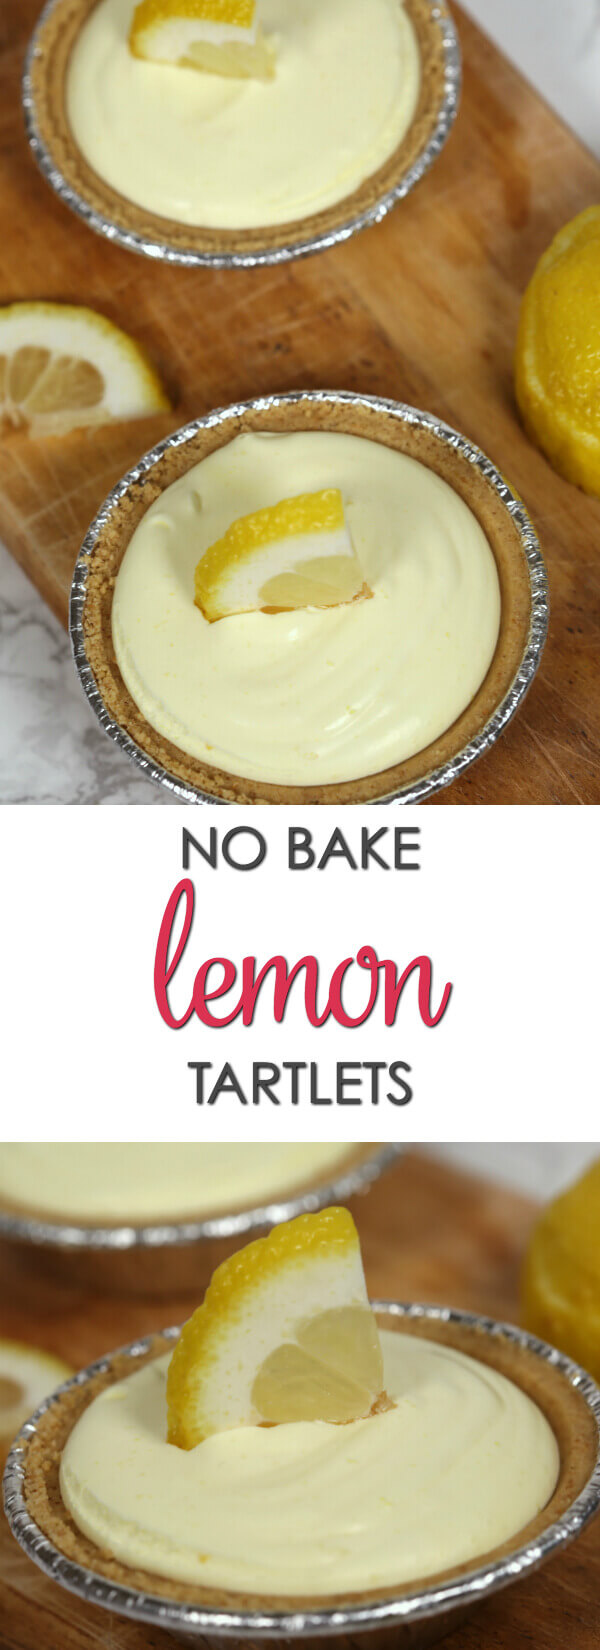 No Bake Lemon Tartlets - these easy tarts are one of my favorite no bake desserts